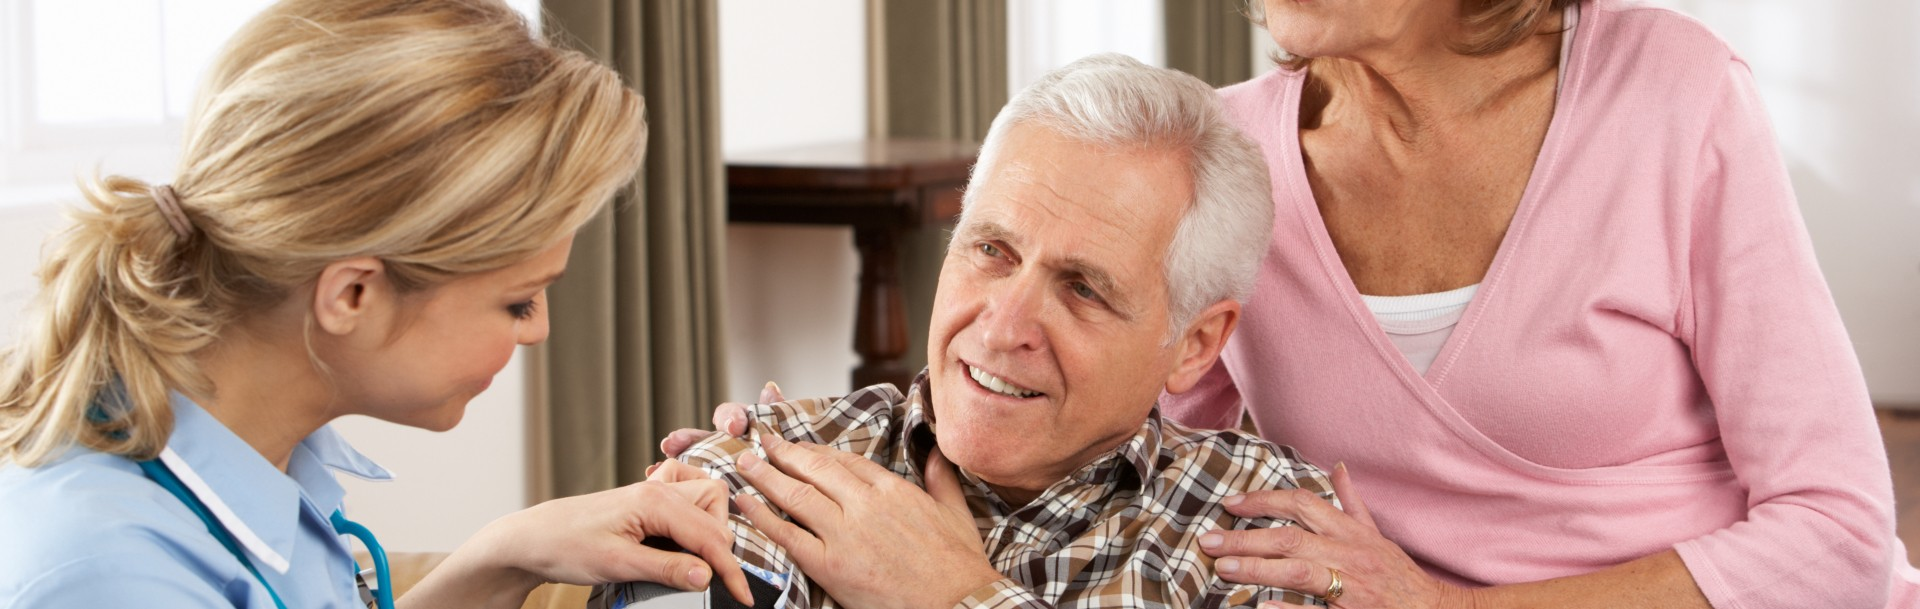 senior man looking at her young caregiver